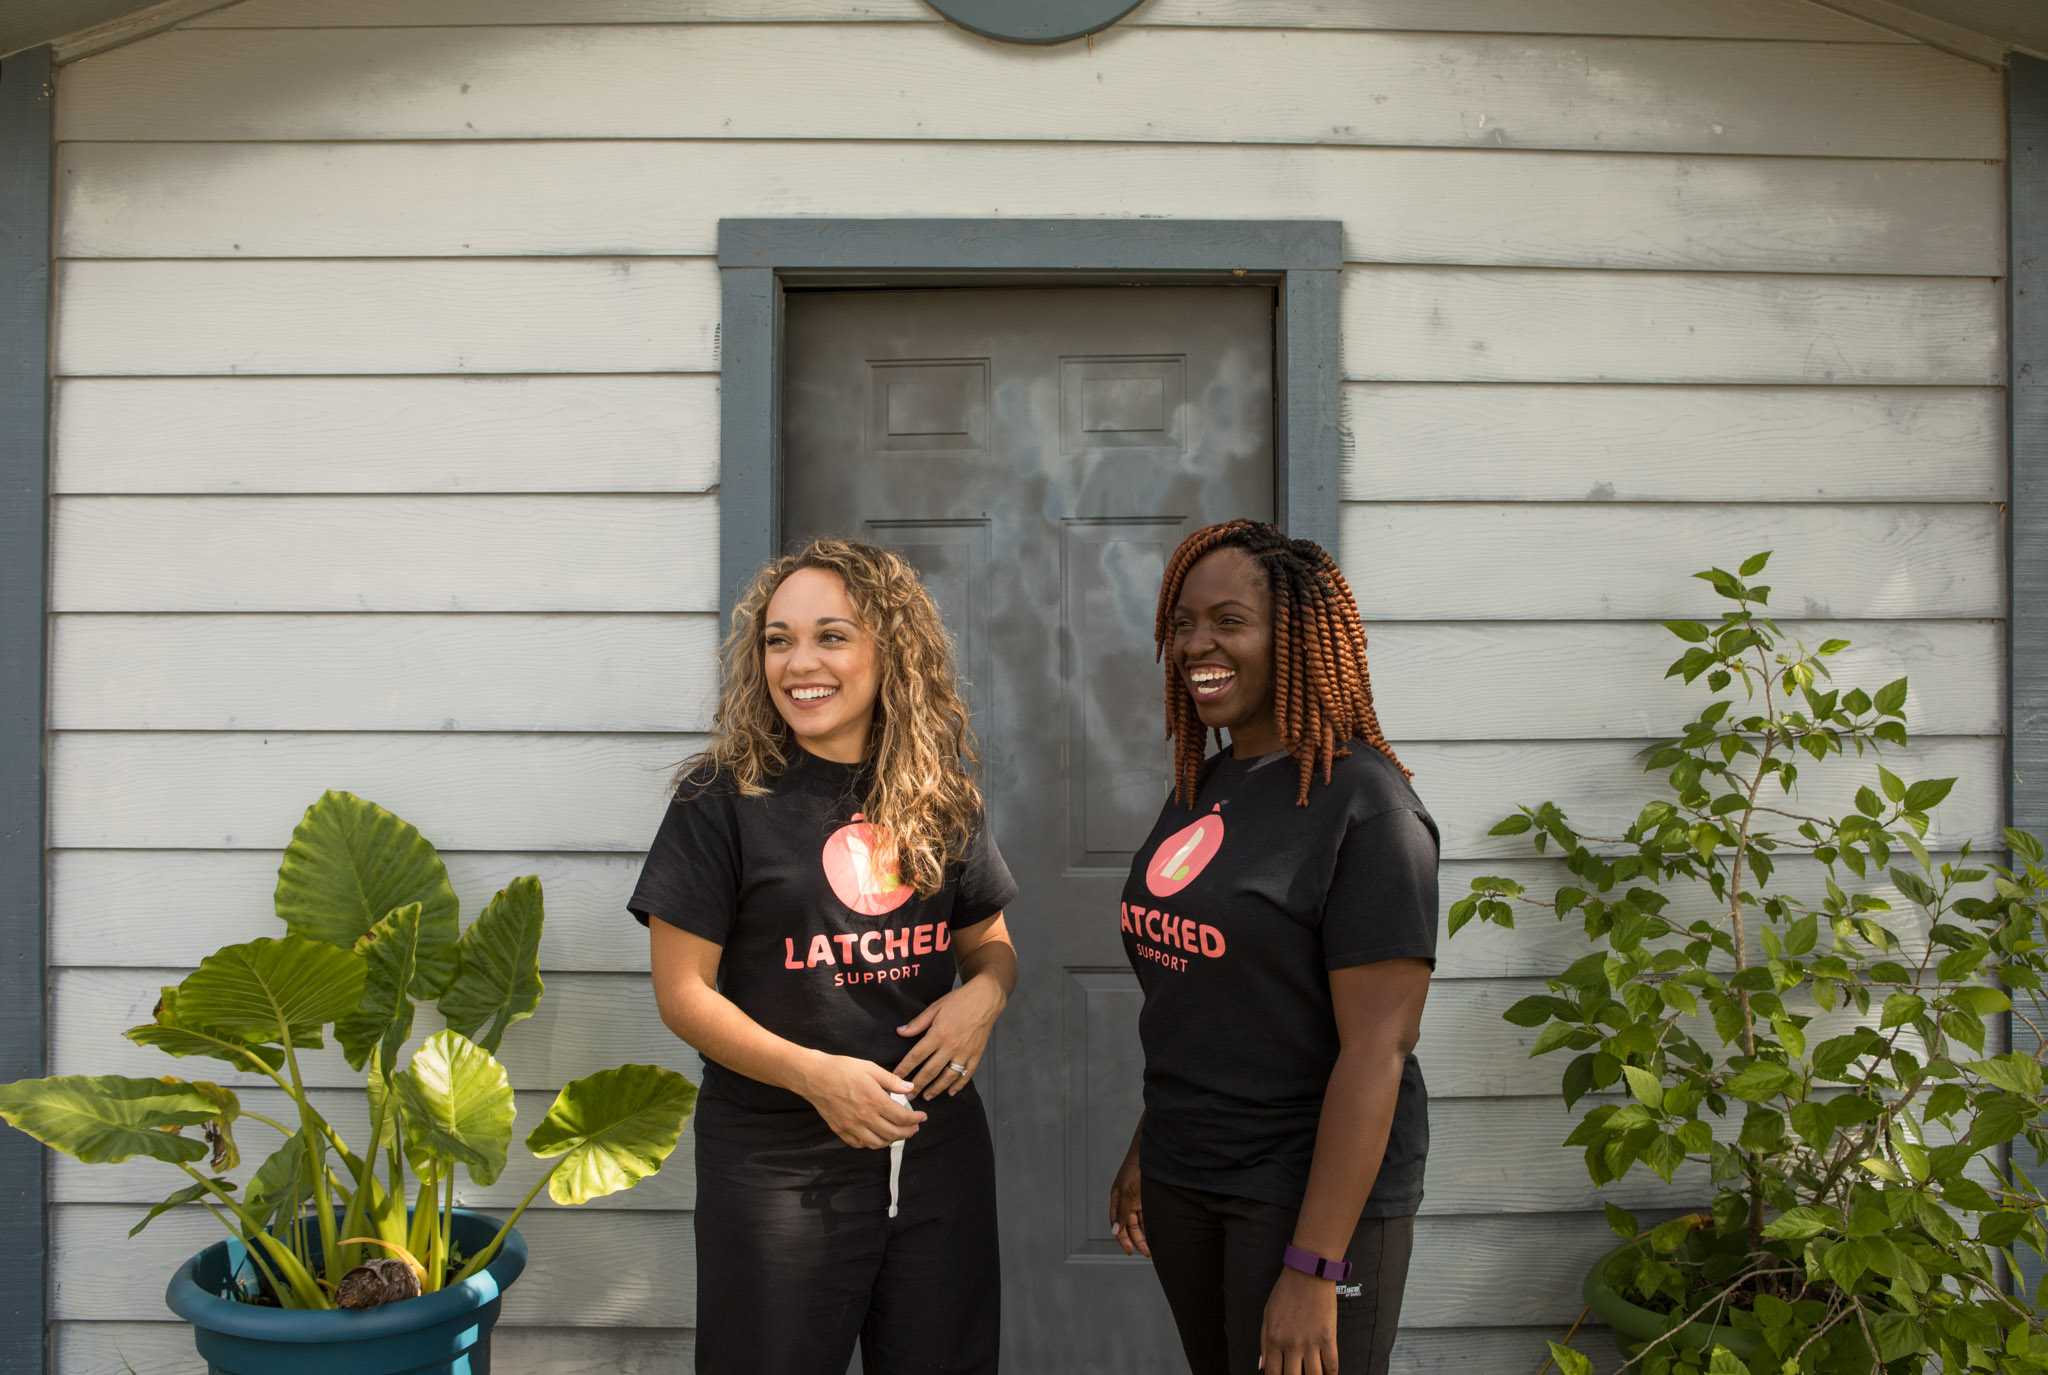 (From left) Ashley Green and Veronica Haywood are the founders of Latched Breastfeeding.